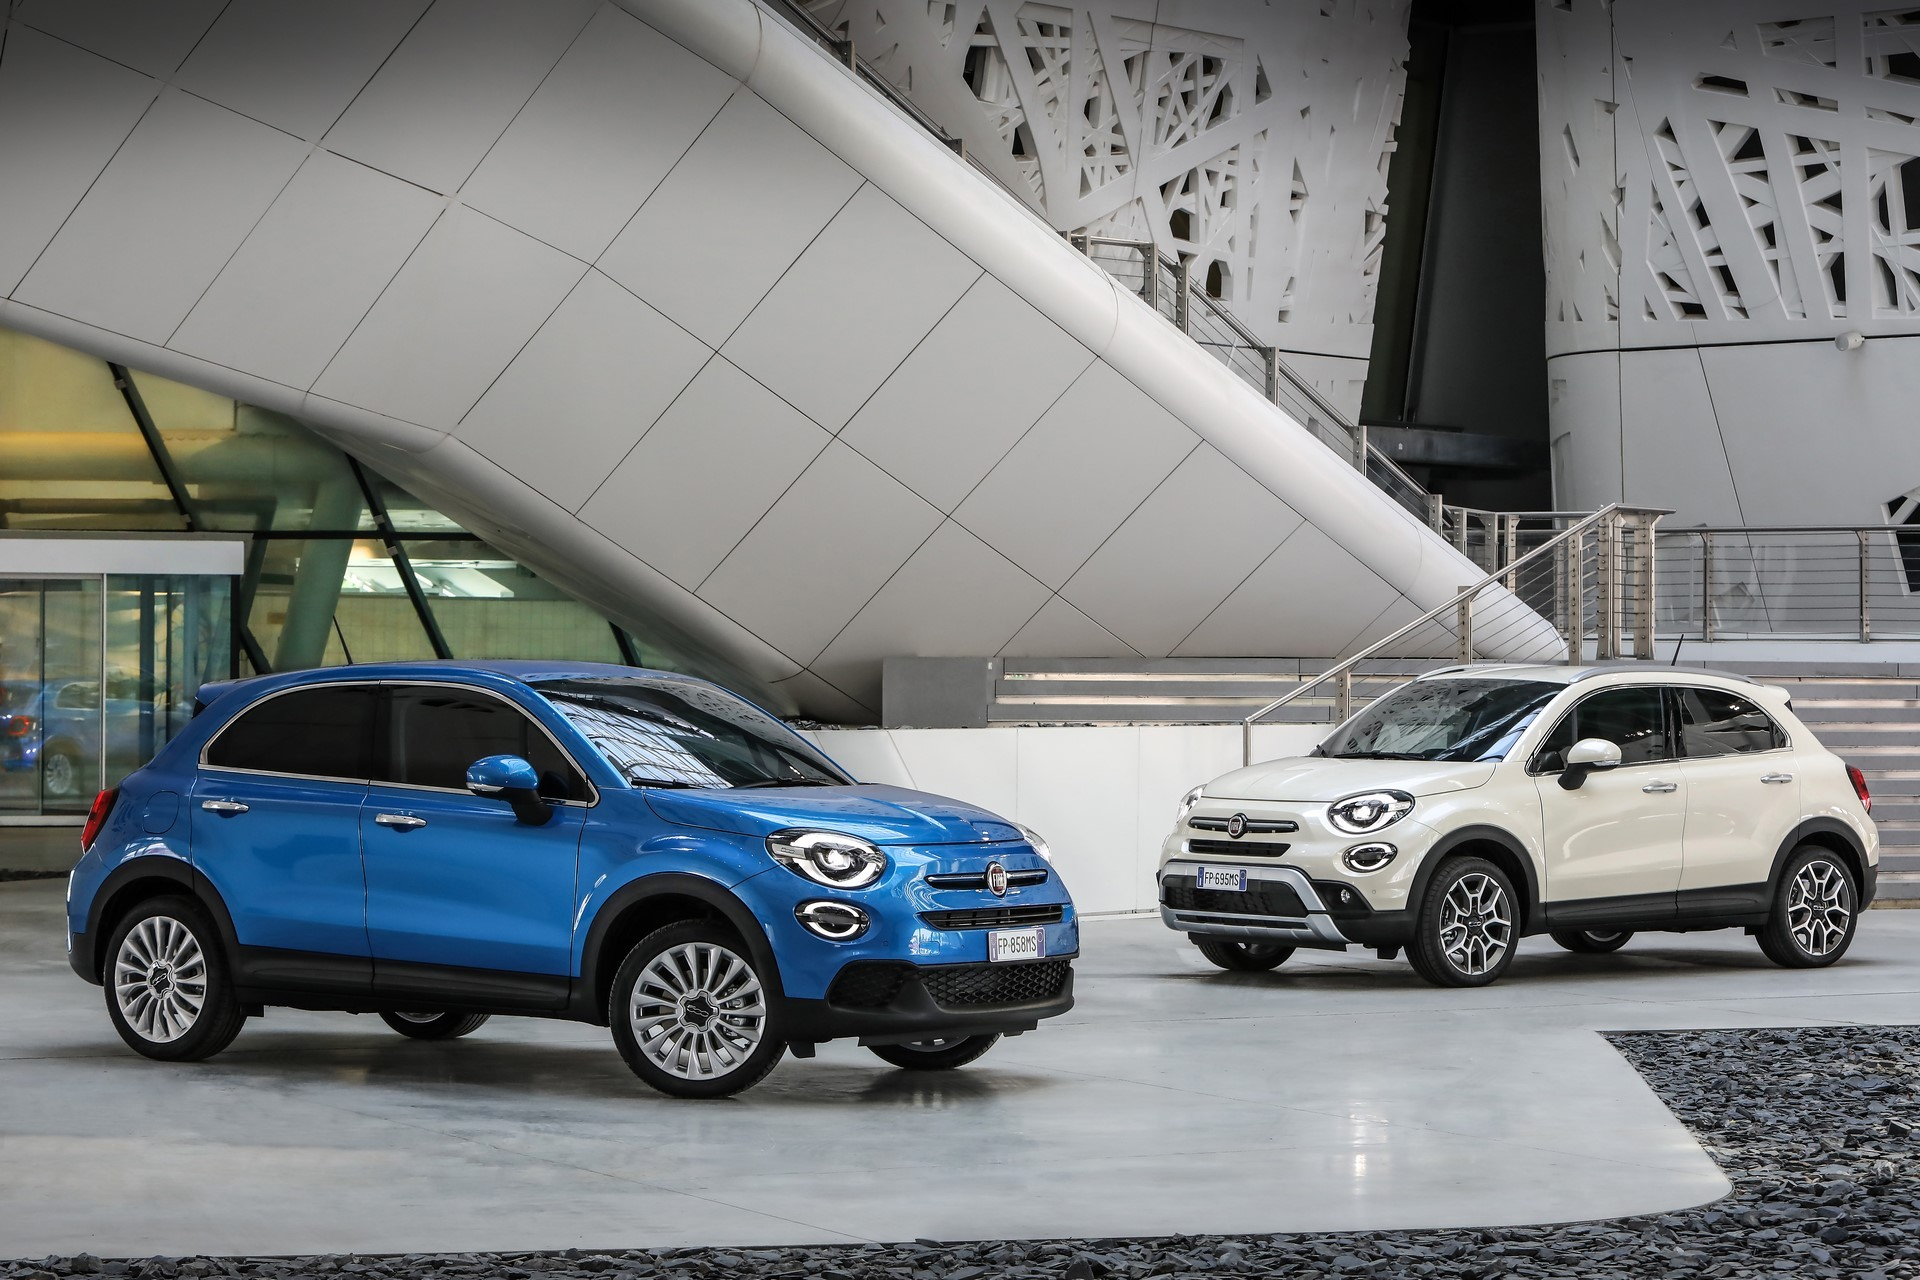 180828_Fiat_New-500X-statiche_01_HP